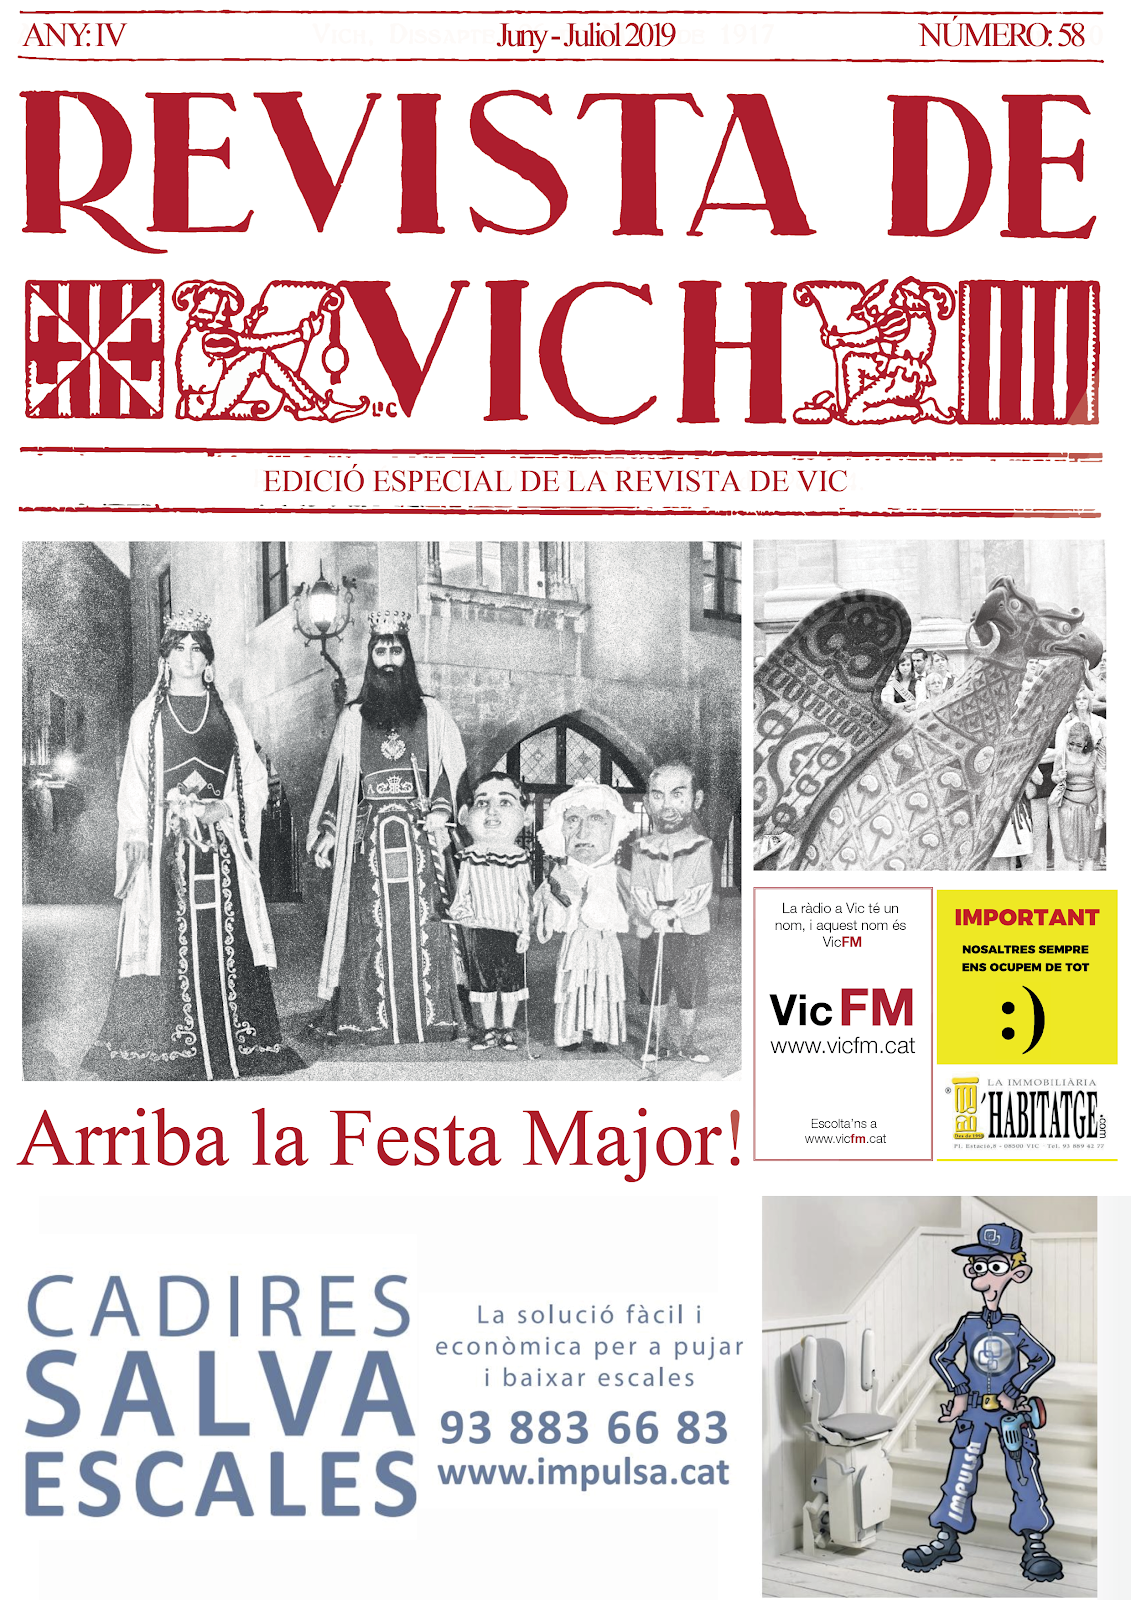 REVISTA DE VIC NÚMERO 58